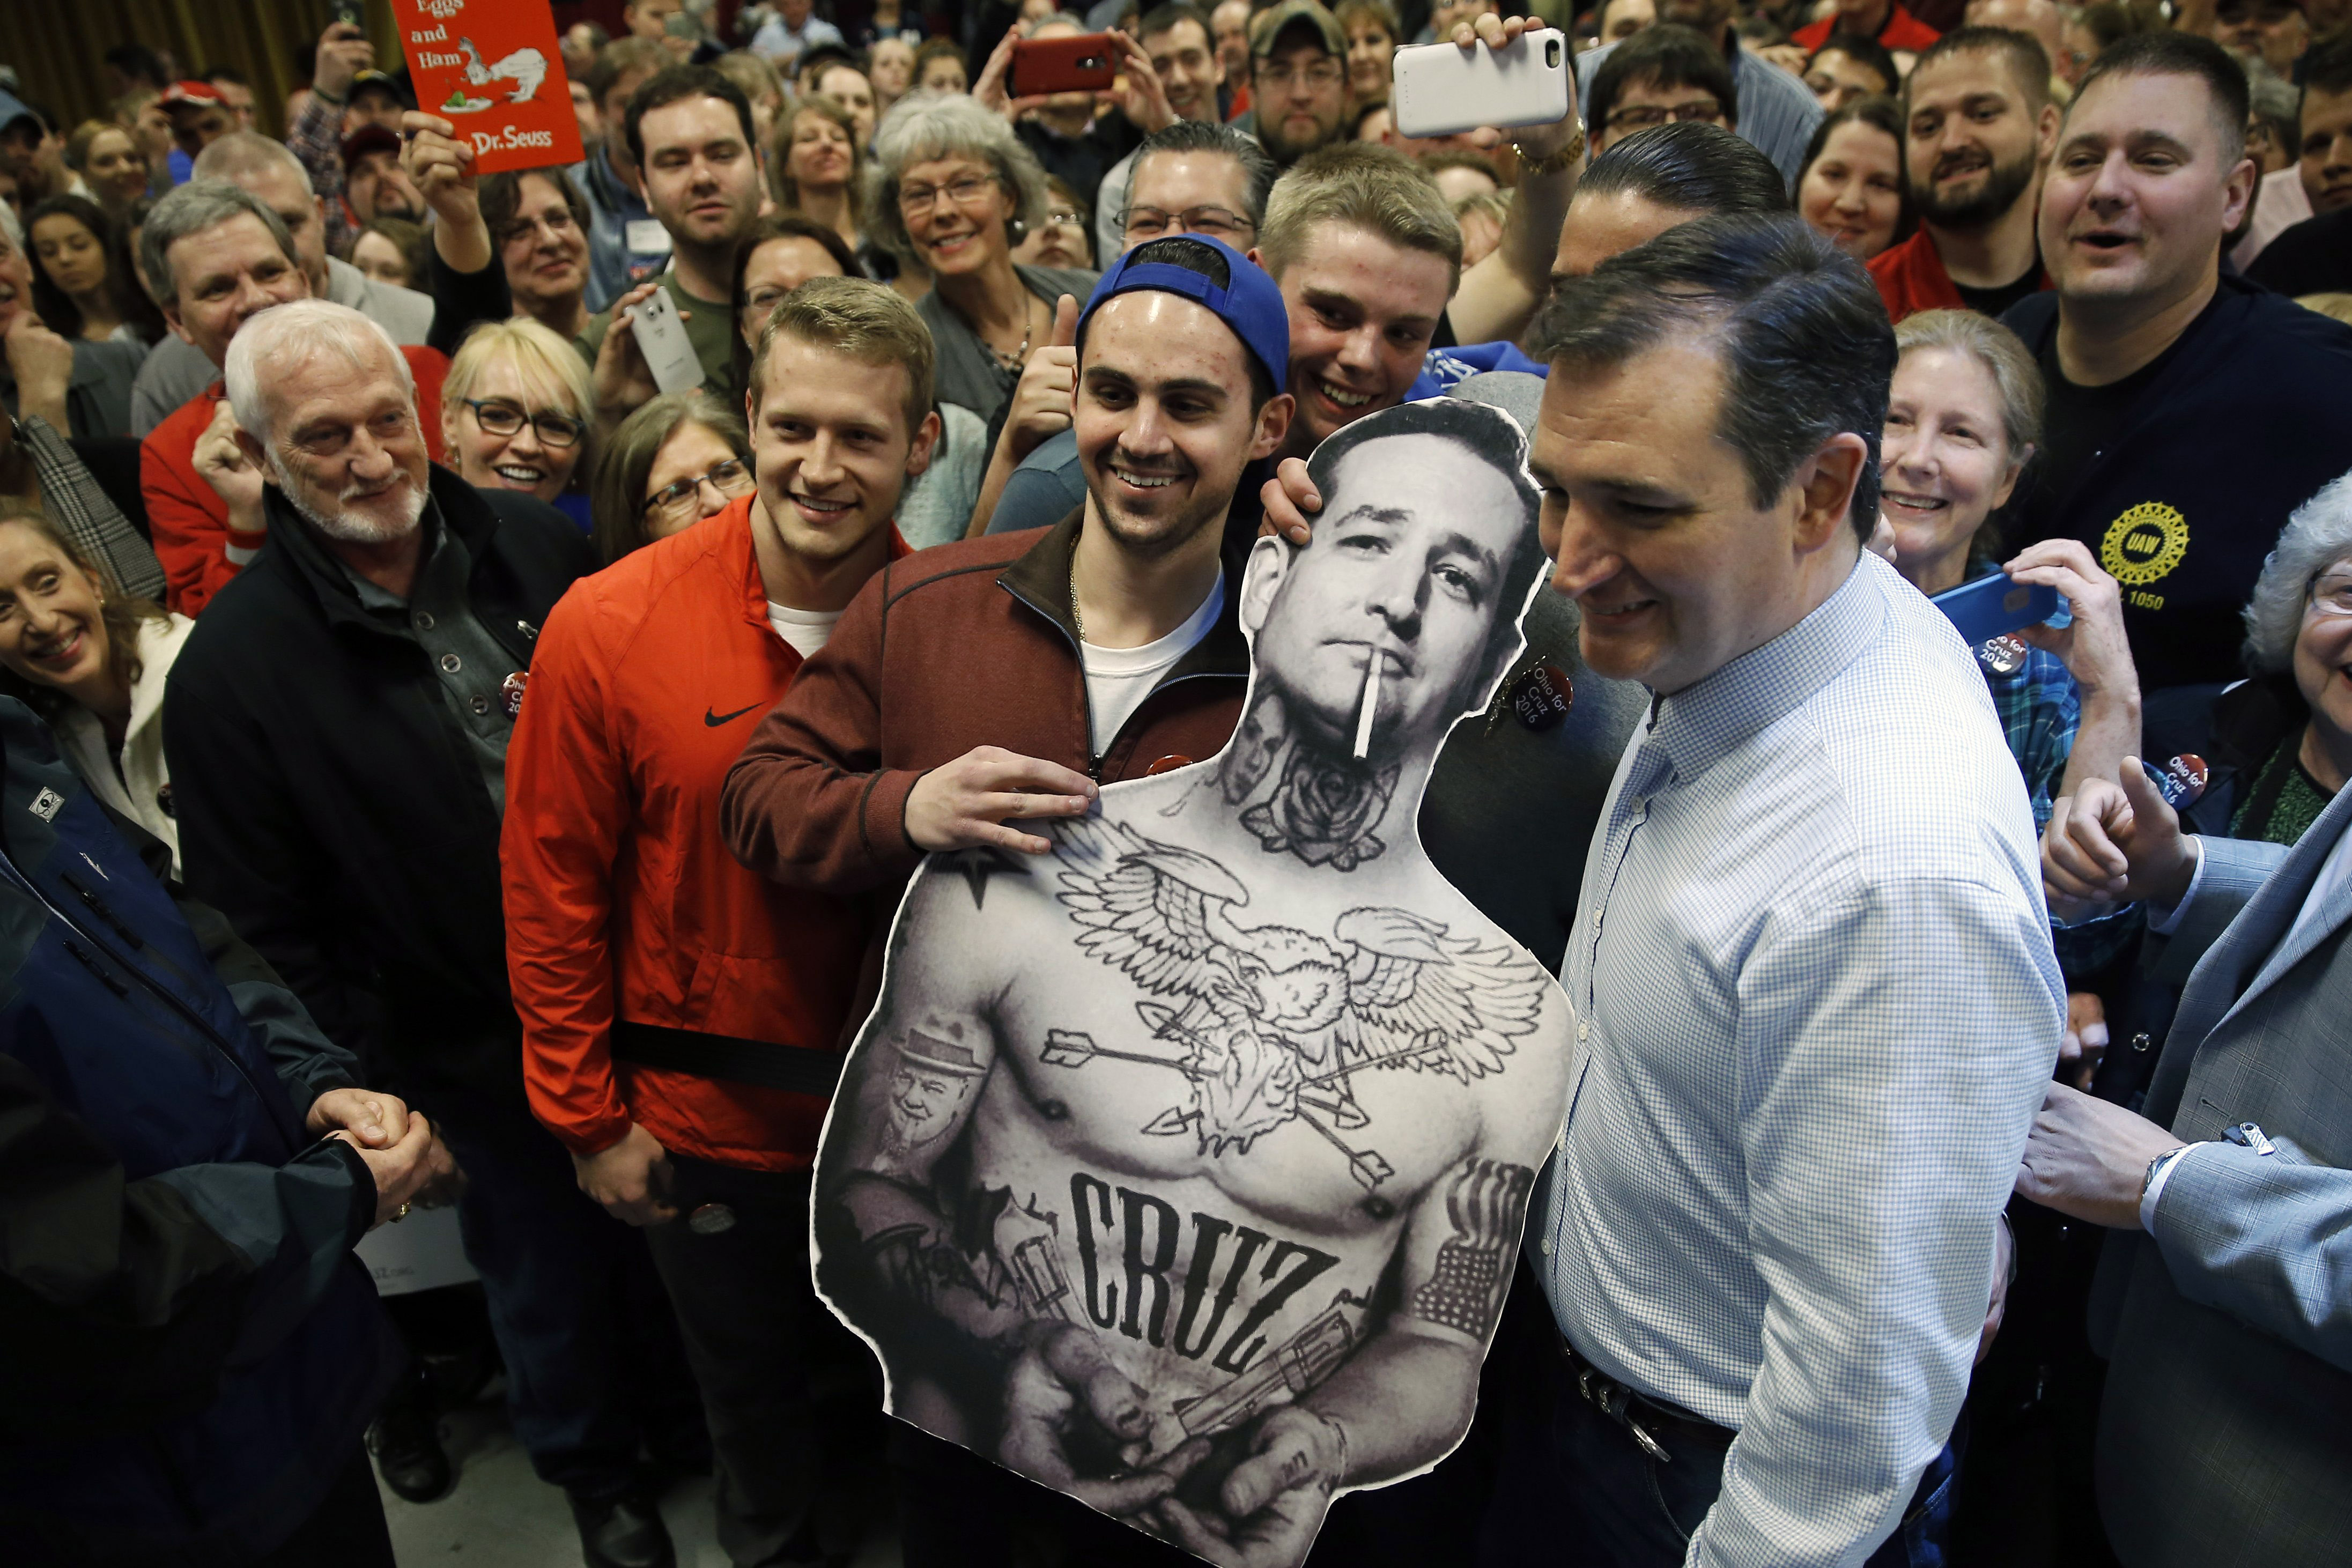 Republican presidential candidate, Texas Sen. Ted Cruz poses for photographs with a cut-out during a campaign stop on March 13 in Columbus, Ohio.